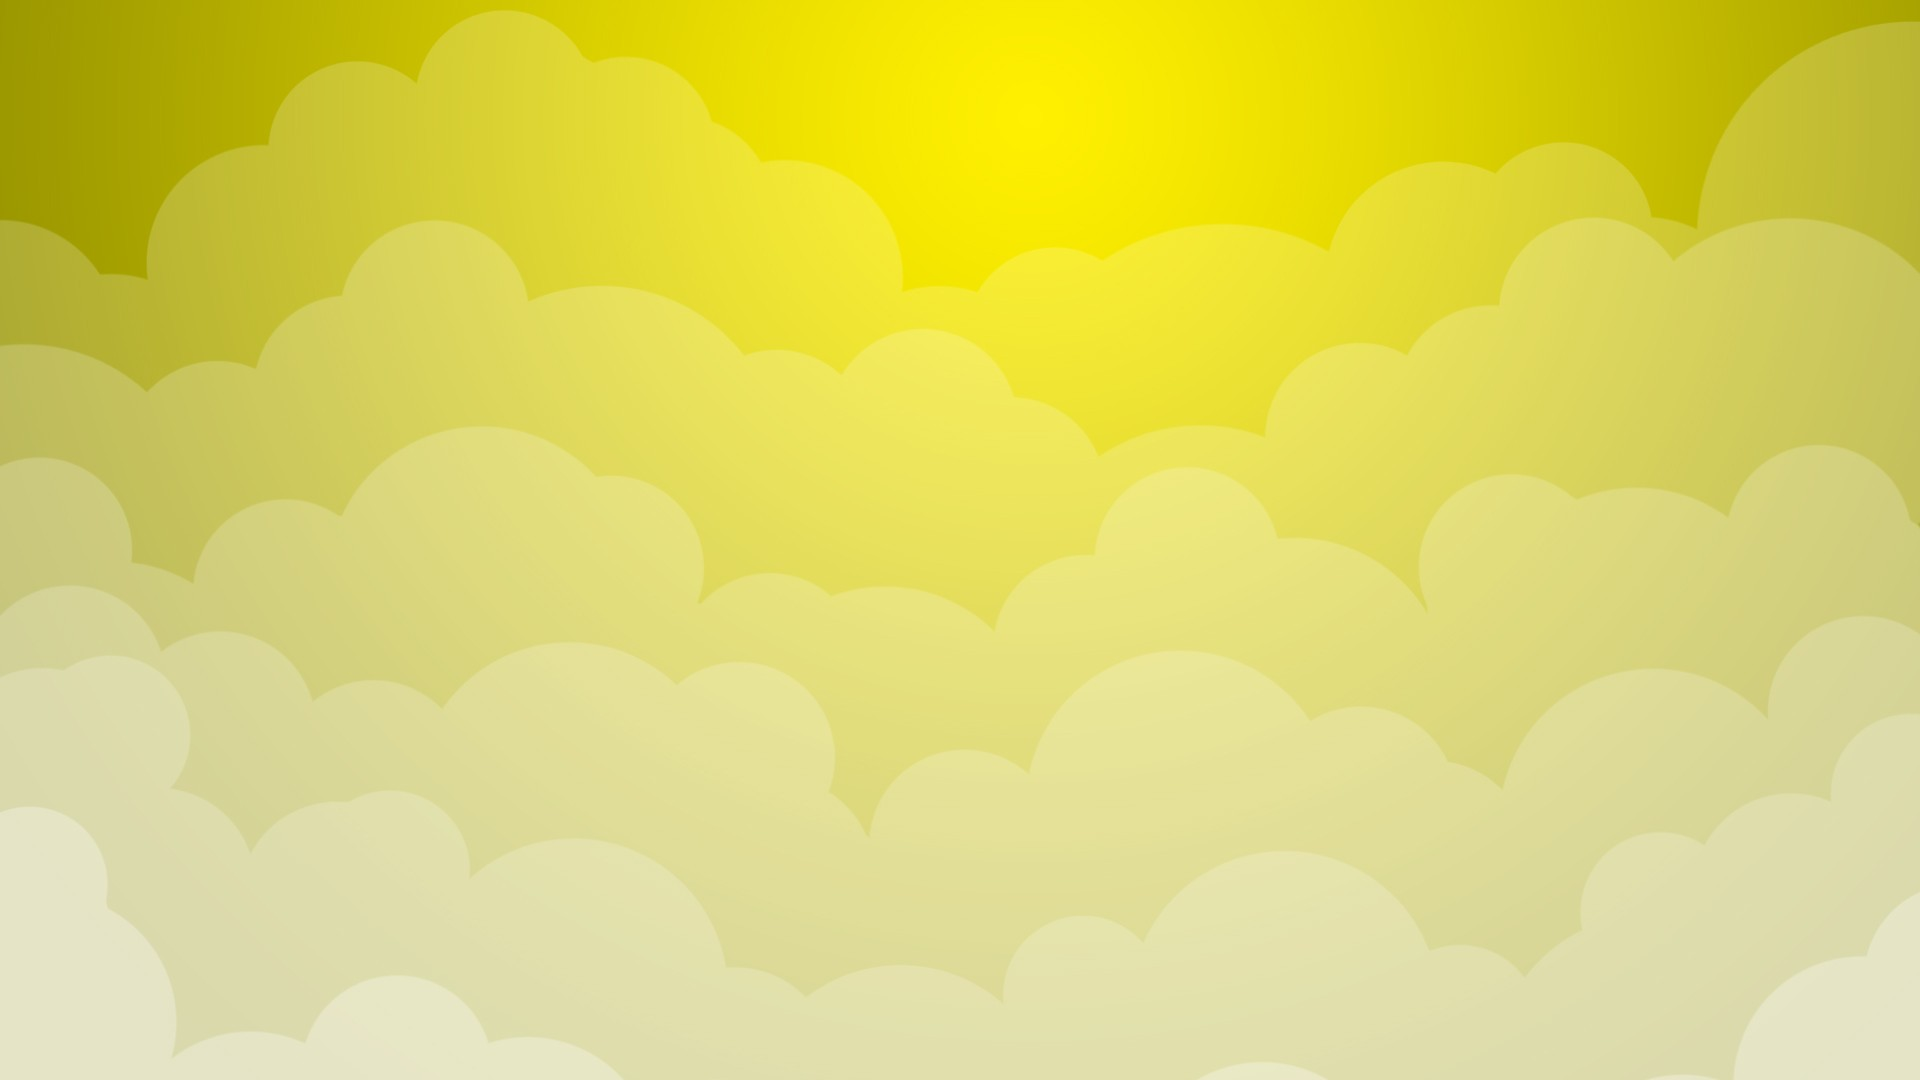 Light Yellow Background Wallpaper Download Abstract